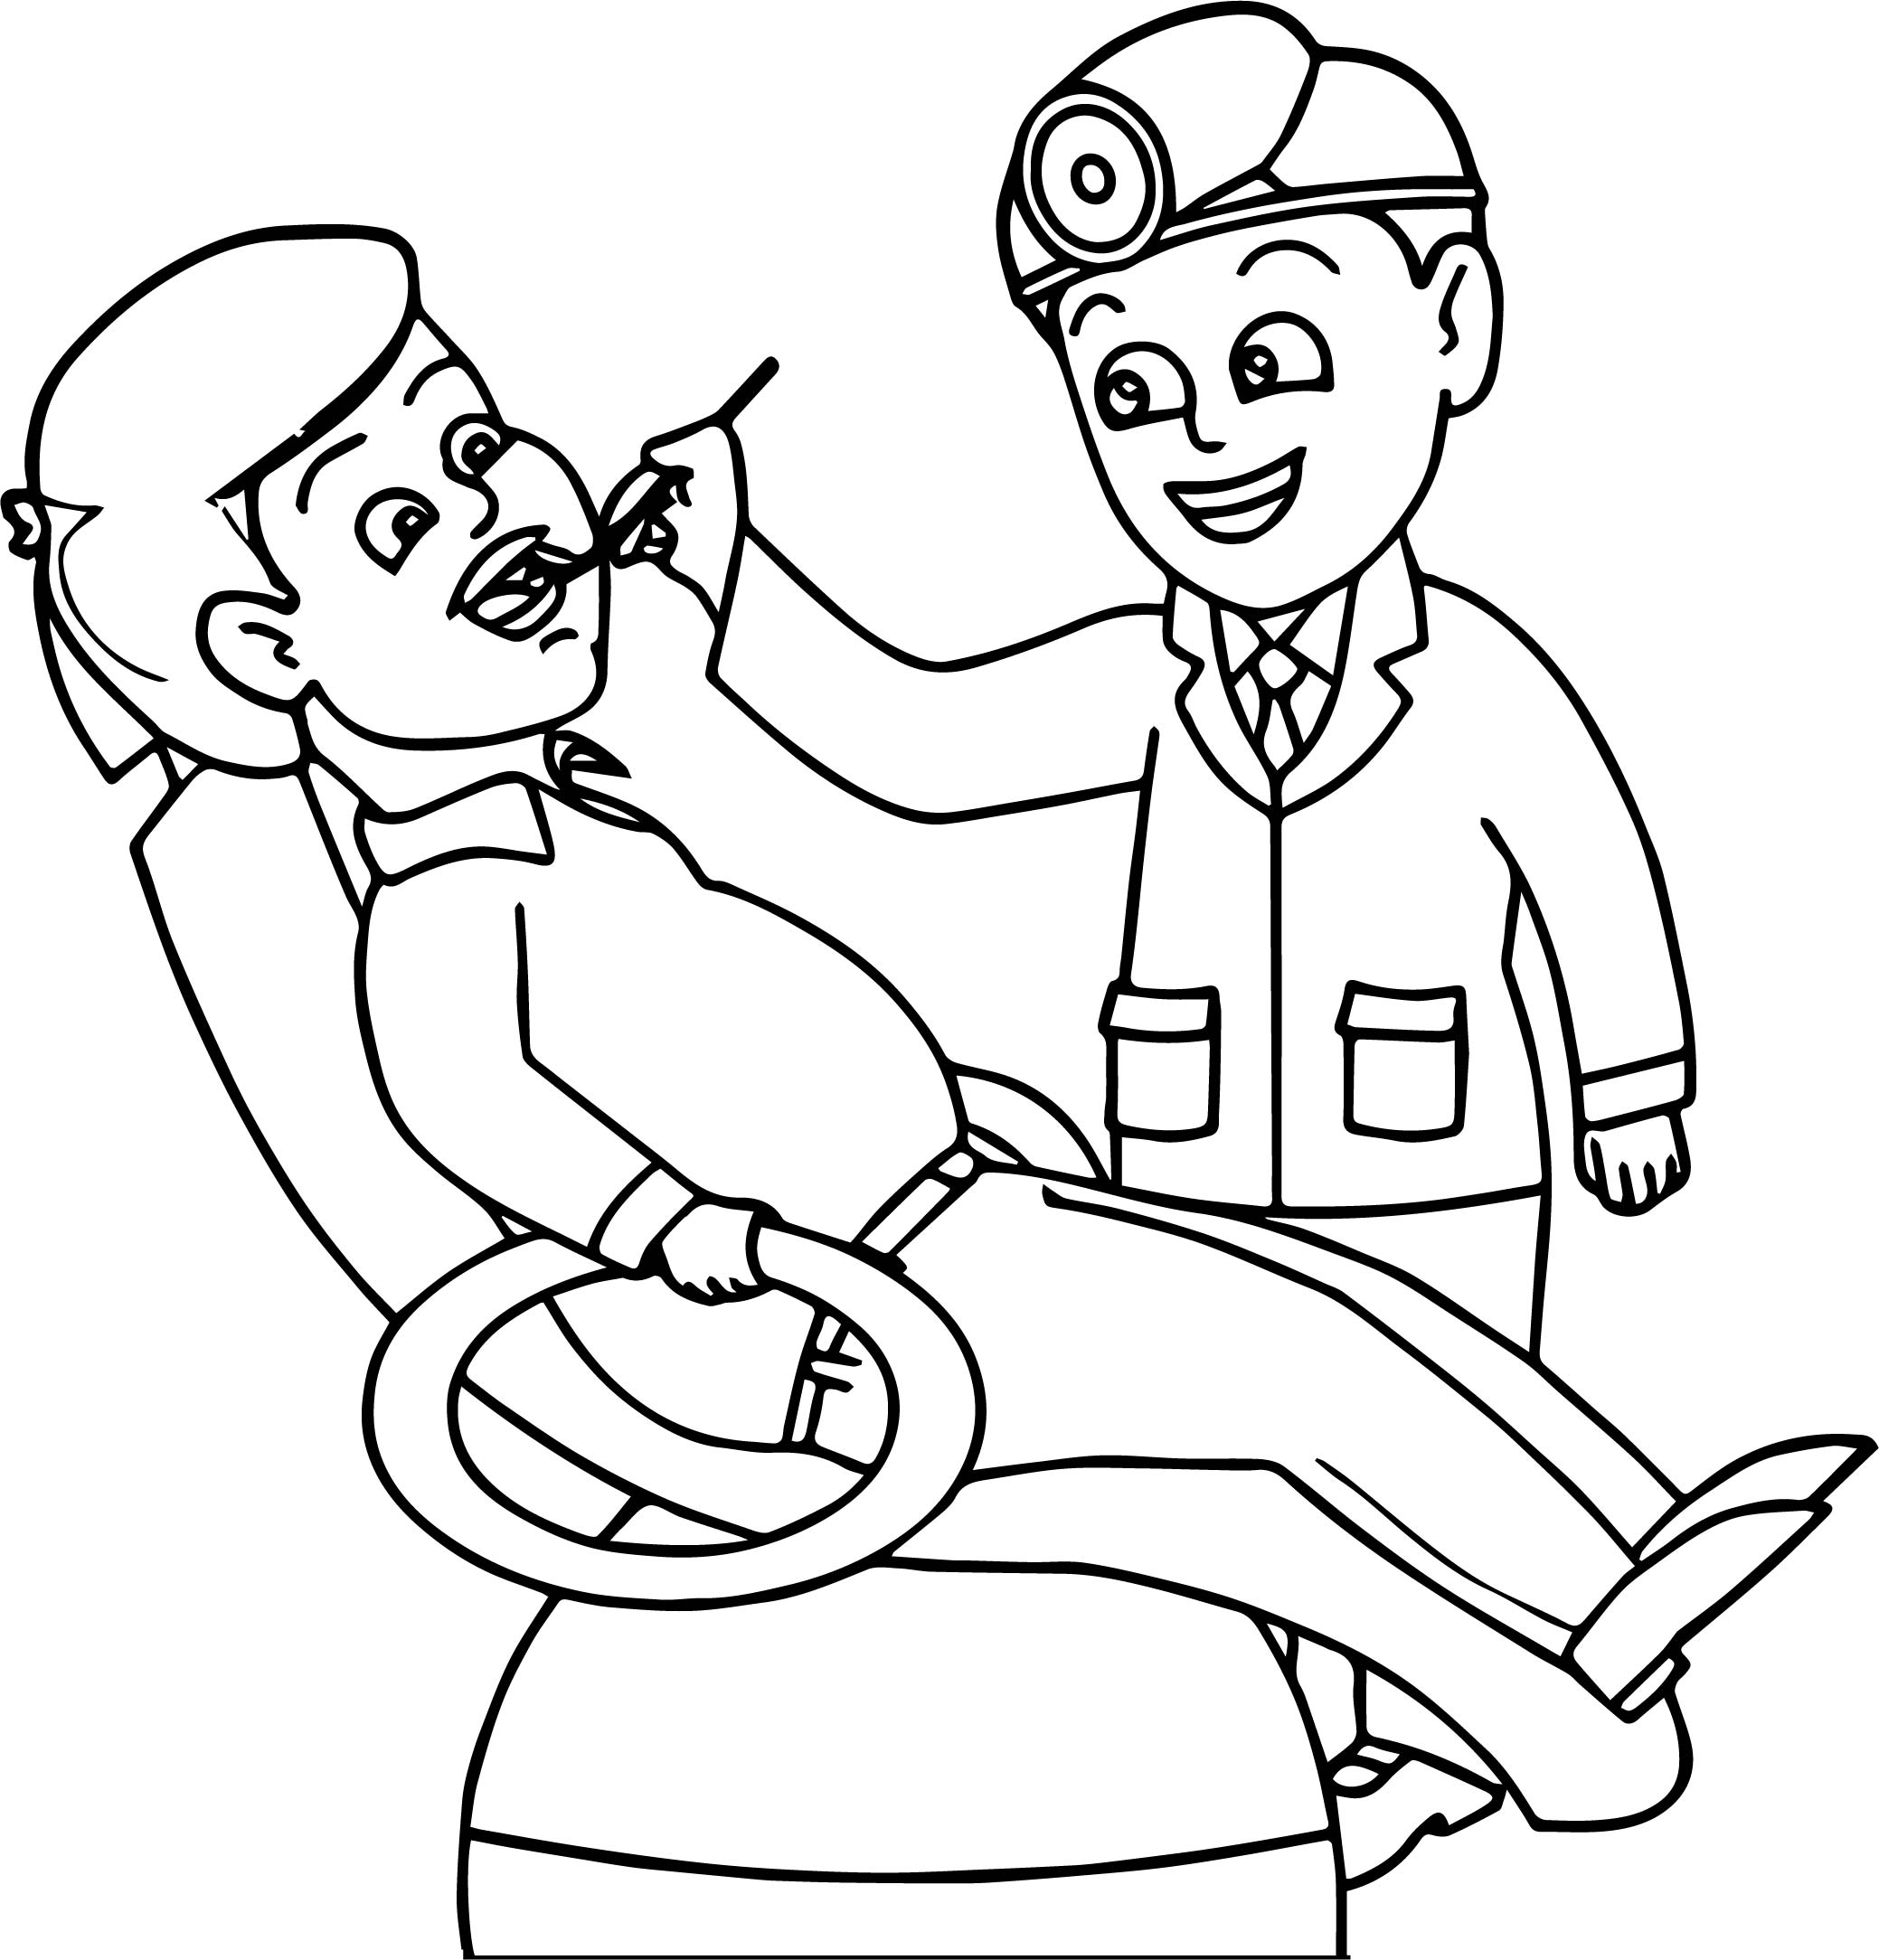 Dental Doctor People Health Coloring Page Wecoloringpage